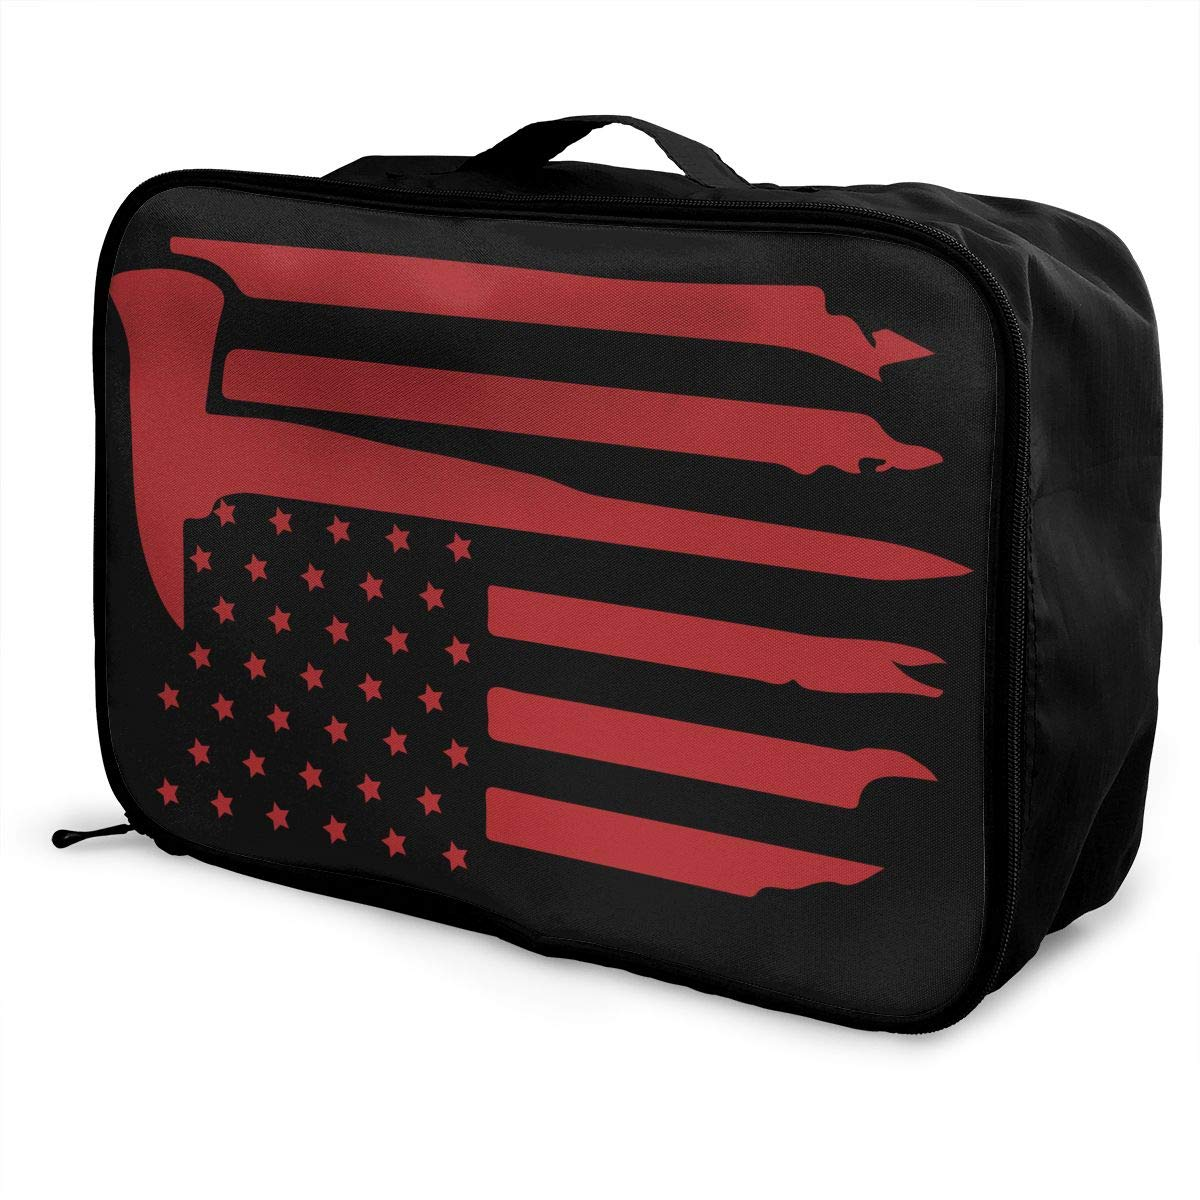 YueLJB American Firefighter Flag Lightweight Large Capacity Portable Luggage Bag Travel Duffel Bag Storage Carry Luggage Duffle Tote Bag